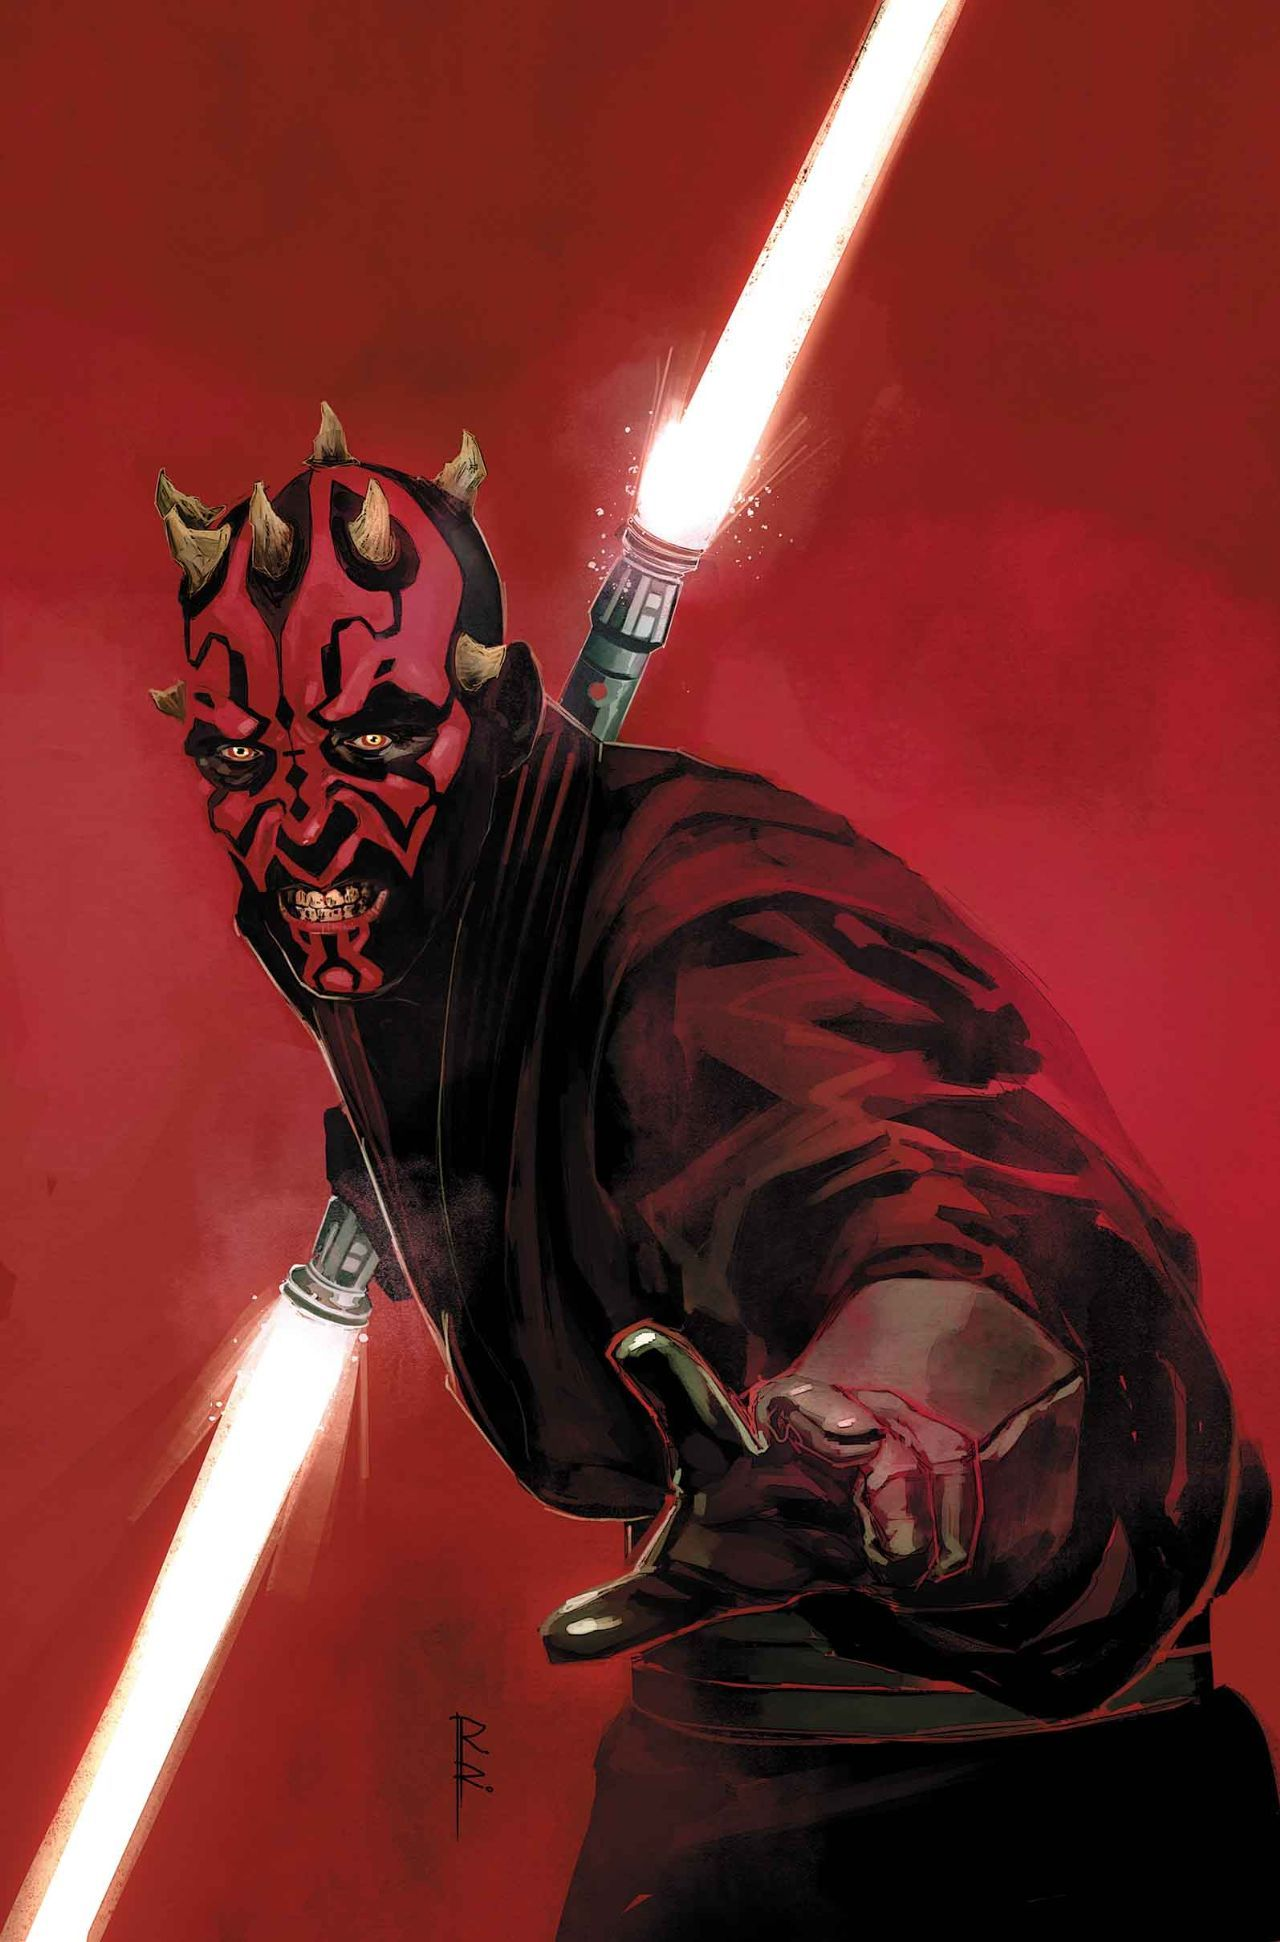 Darth Maul Comic Book Cover Star Wars Wallpaper Star Wars Art Darth Maul Wallpaper